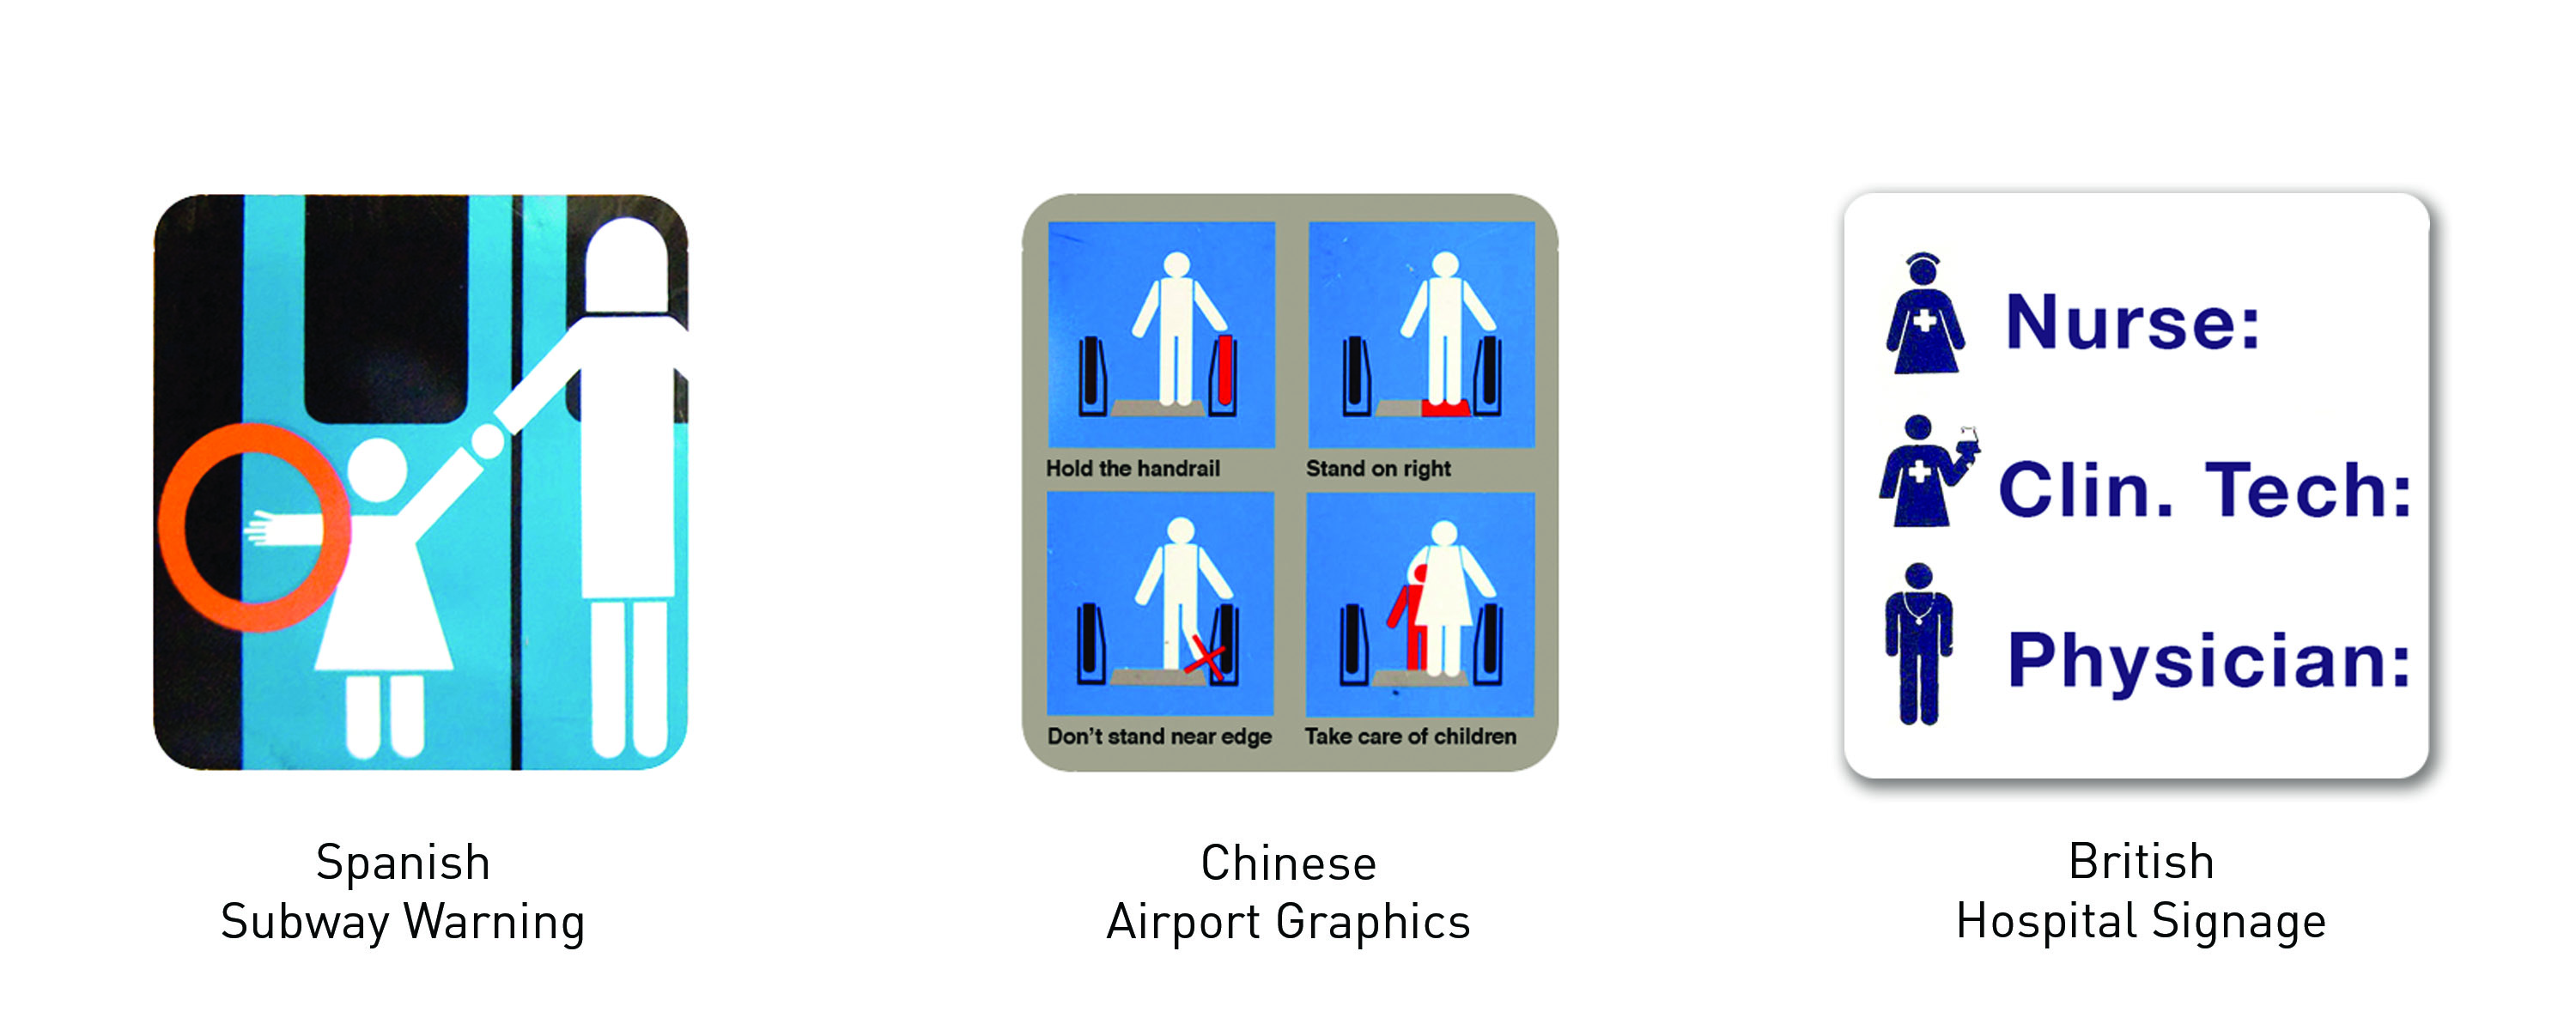 Figure 11.: Ethics of Everyday Icons: The visually persuasive power of everyday signage can have a formative influence on society. The seemingly neutral and objective qualities of male and female iconography are actually socially symbolic in their gender references, and belie a normalization of gender roles, social hierarchies and stereotypical labeling. Source: Dobson, T. 2016.